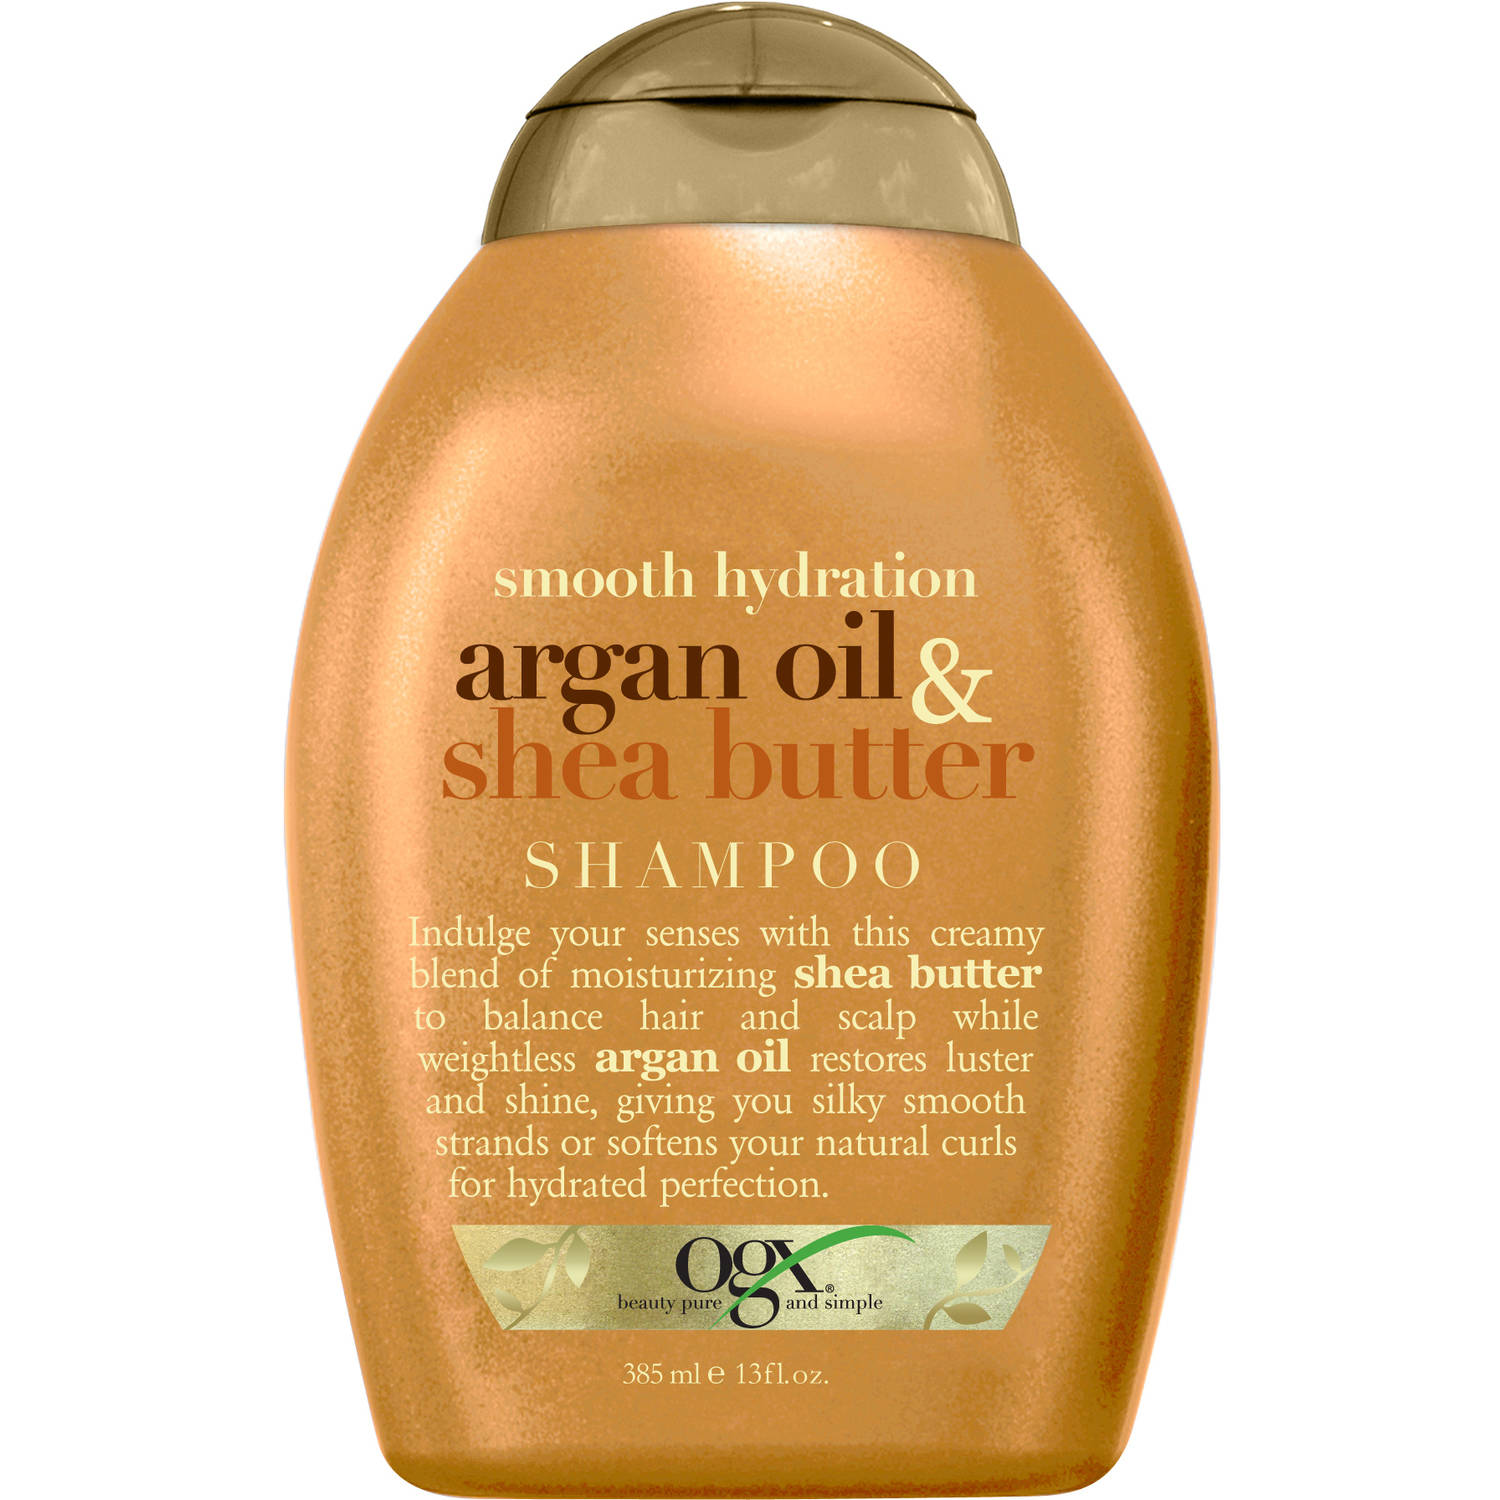 OGX Smooth Hydration Argan Oil & Shea Butter Shampoo, 13 Oz